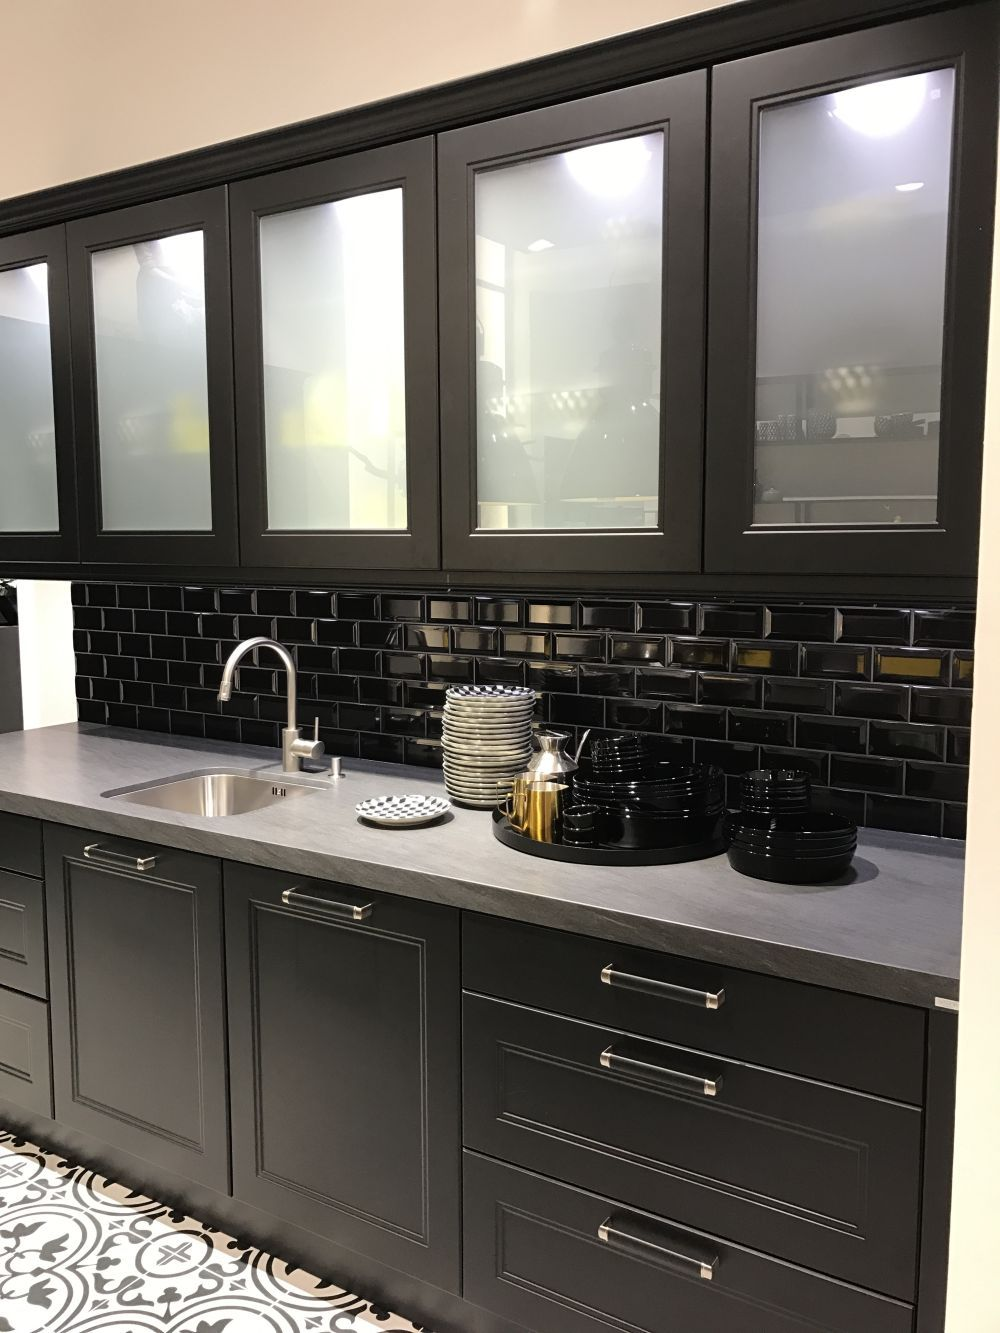 Black Kitchen Cabinets With Subway Tiles And White Frosted Glass Doors   Framed   Home Decorating Trends   Homedit... QualQuest***********